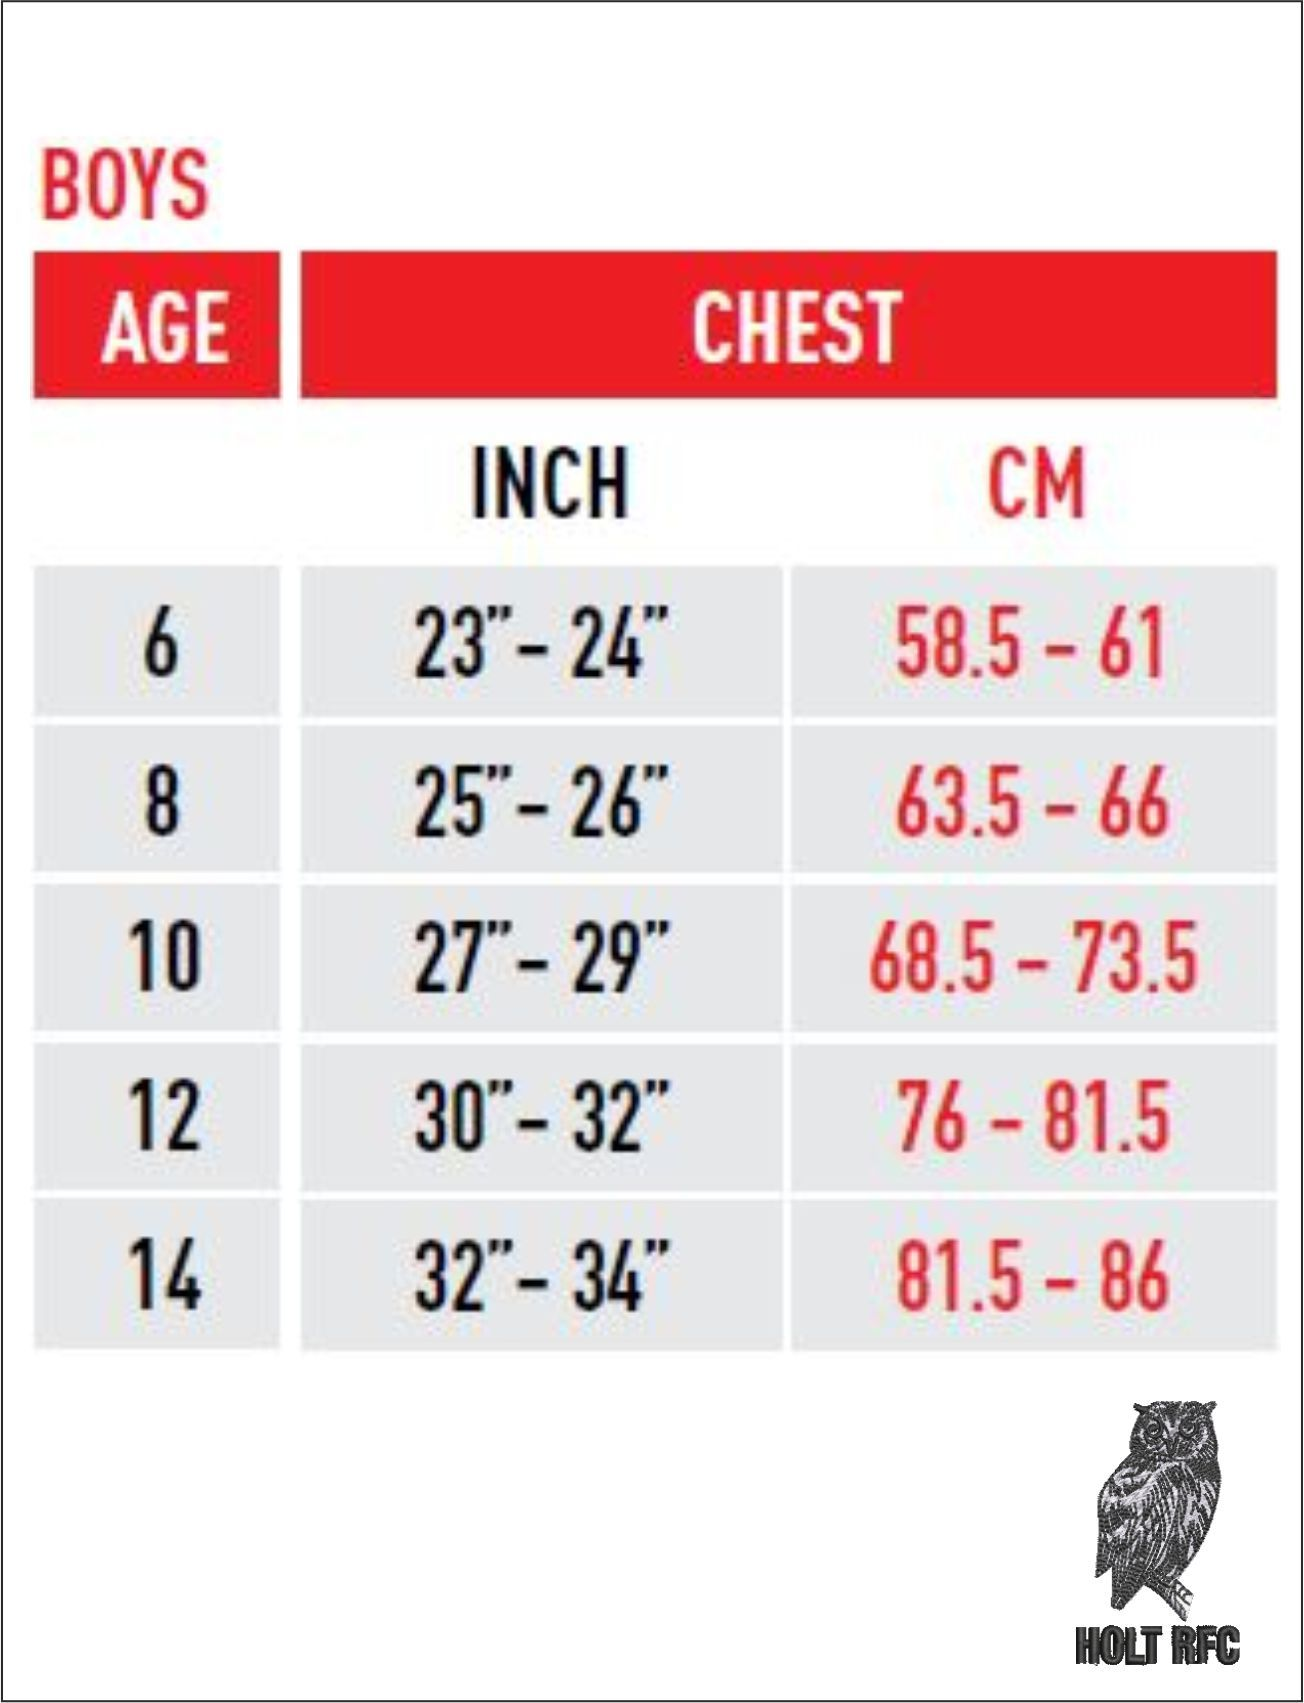 Boys Chest Size Guide